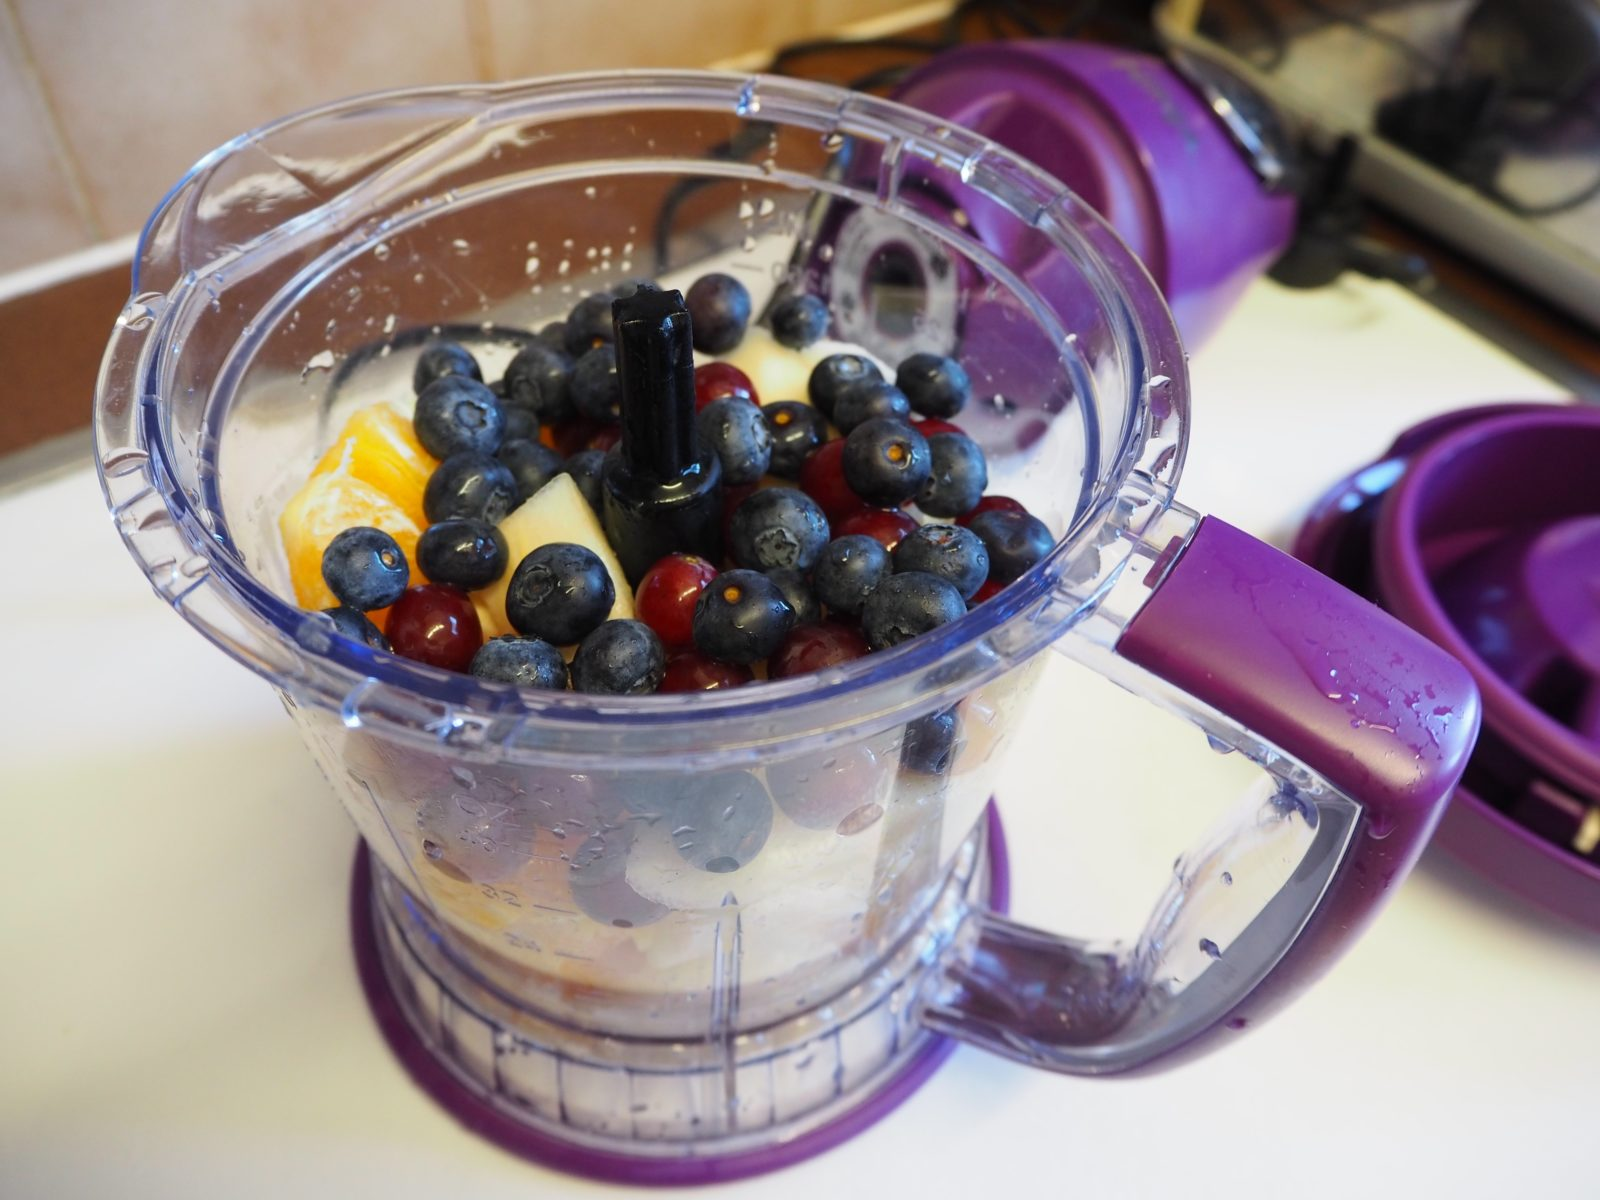 The Fruity Detox Smoothie